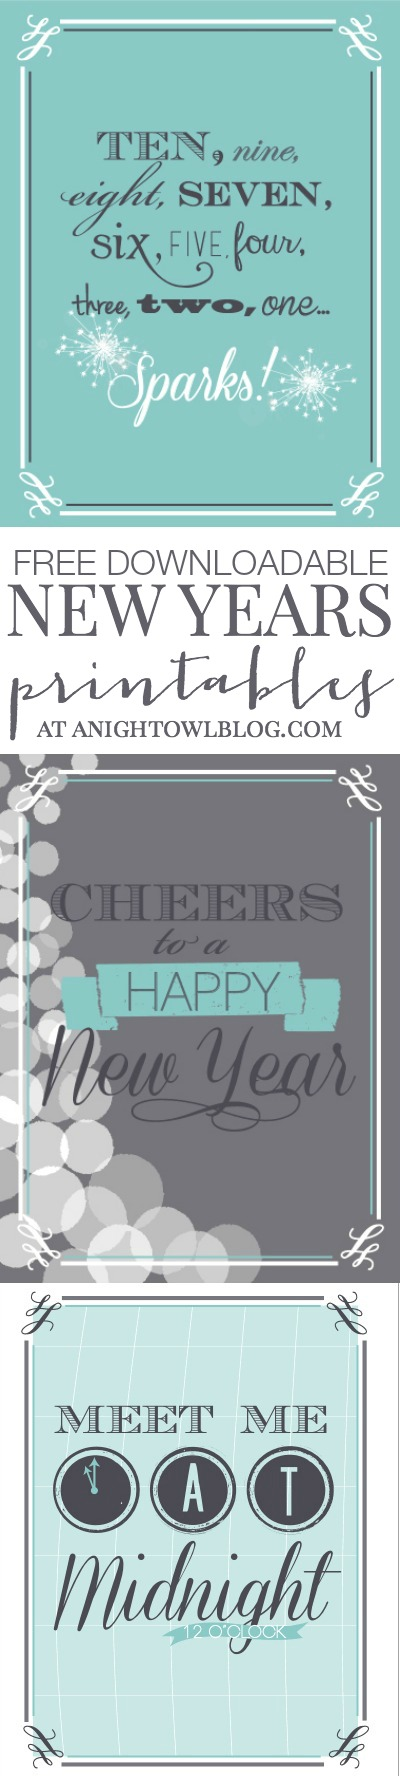 free downloadable new years eve printables at anightowlblogcom